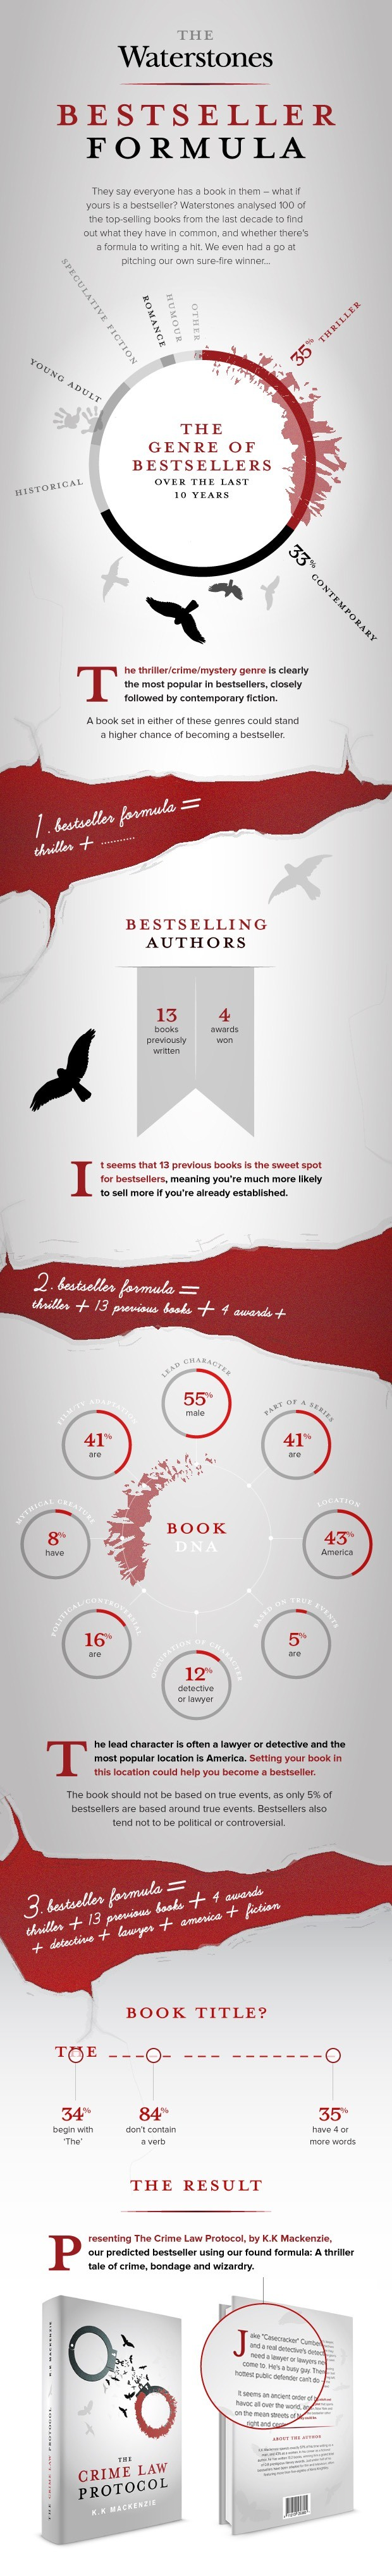 A-formula-for-the-best-selling-novel-full-infographic